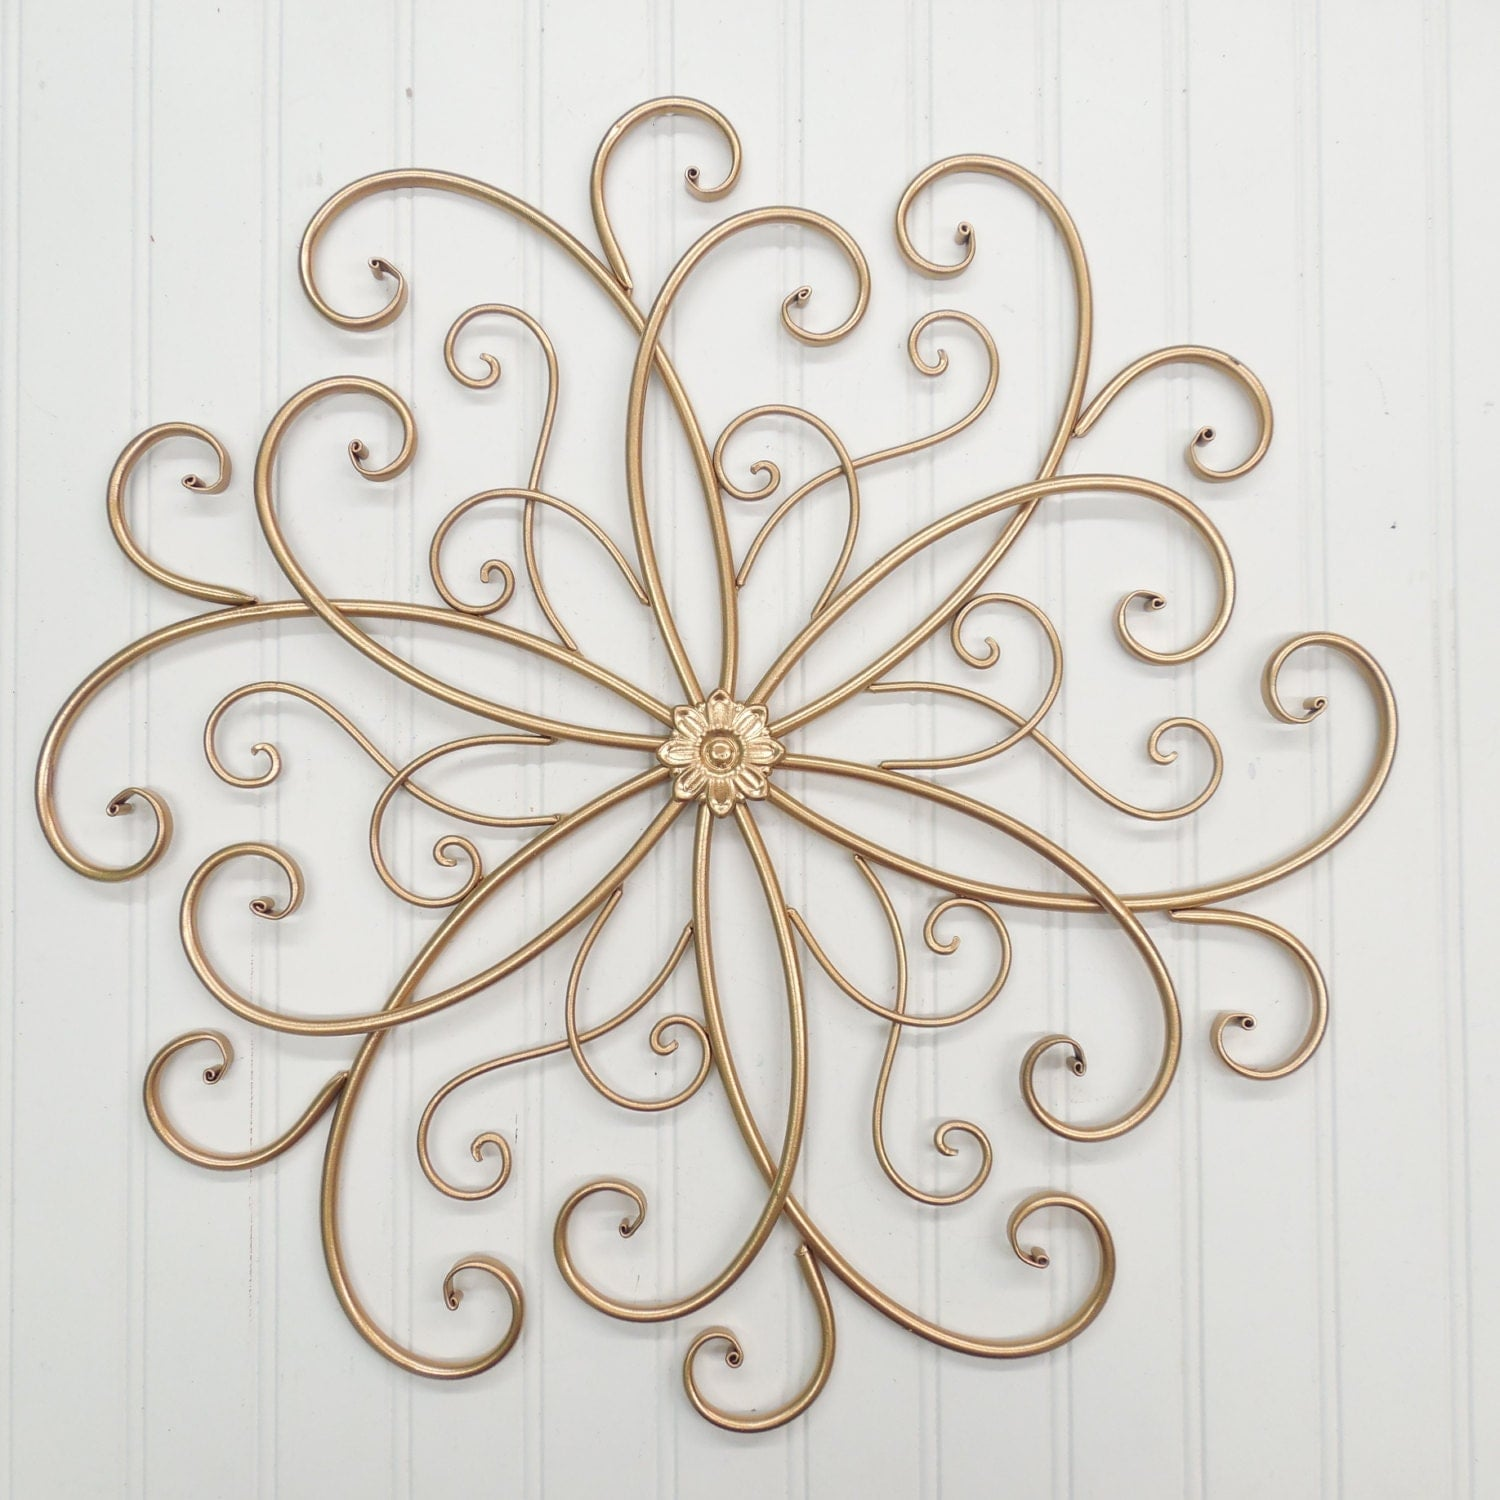 Gold R Wall Decor : Wall decor colors gold metal sslid wrought